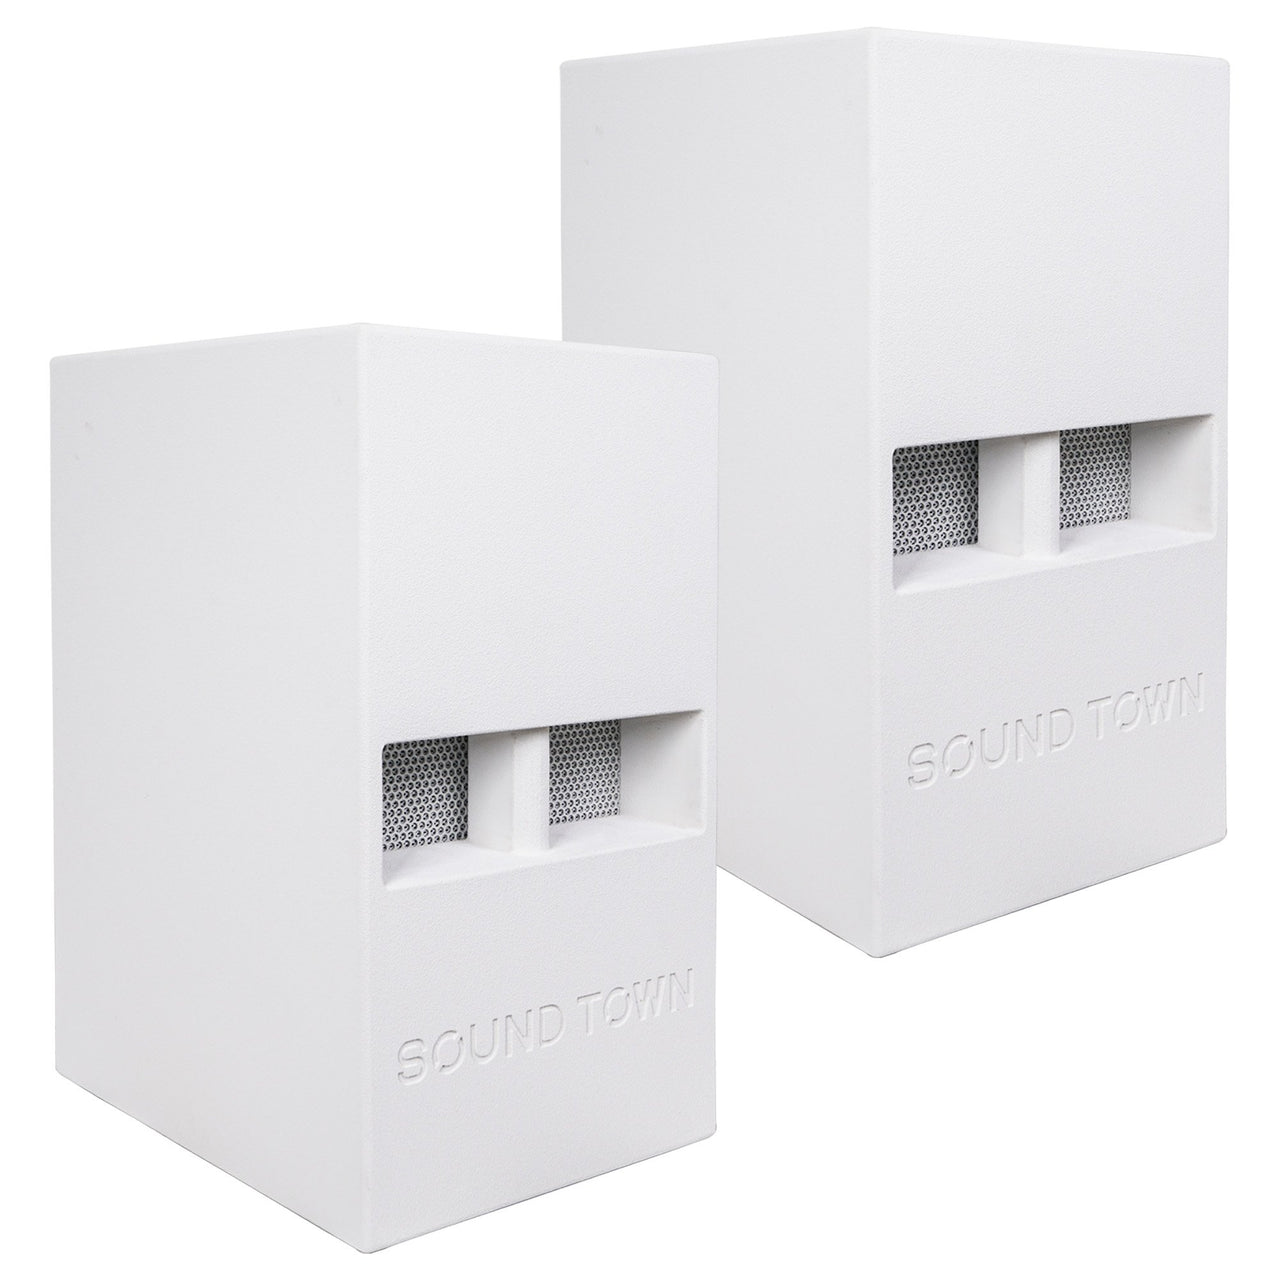 "Sound Town CARME-112SWPW-PAIR CARME Series Pair of 12"" 800 Watts Powered PA DJ Subwoofers with Folded Horn Design, White"